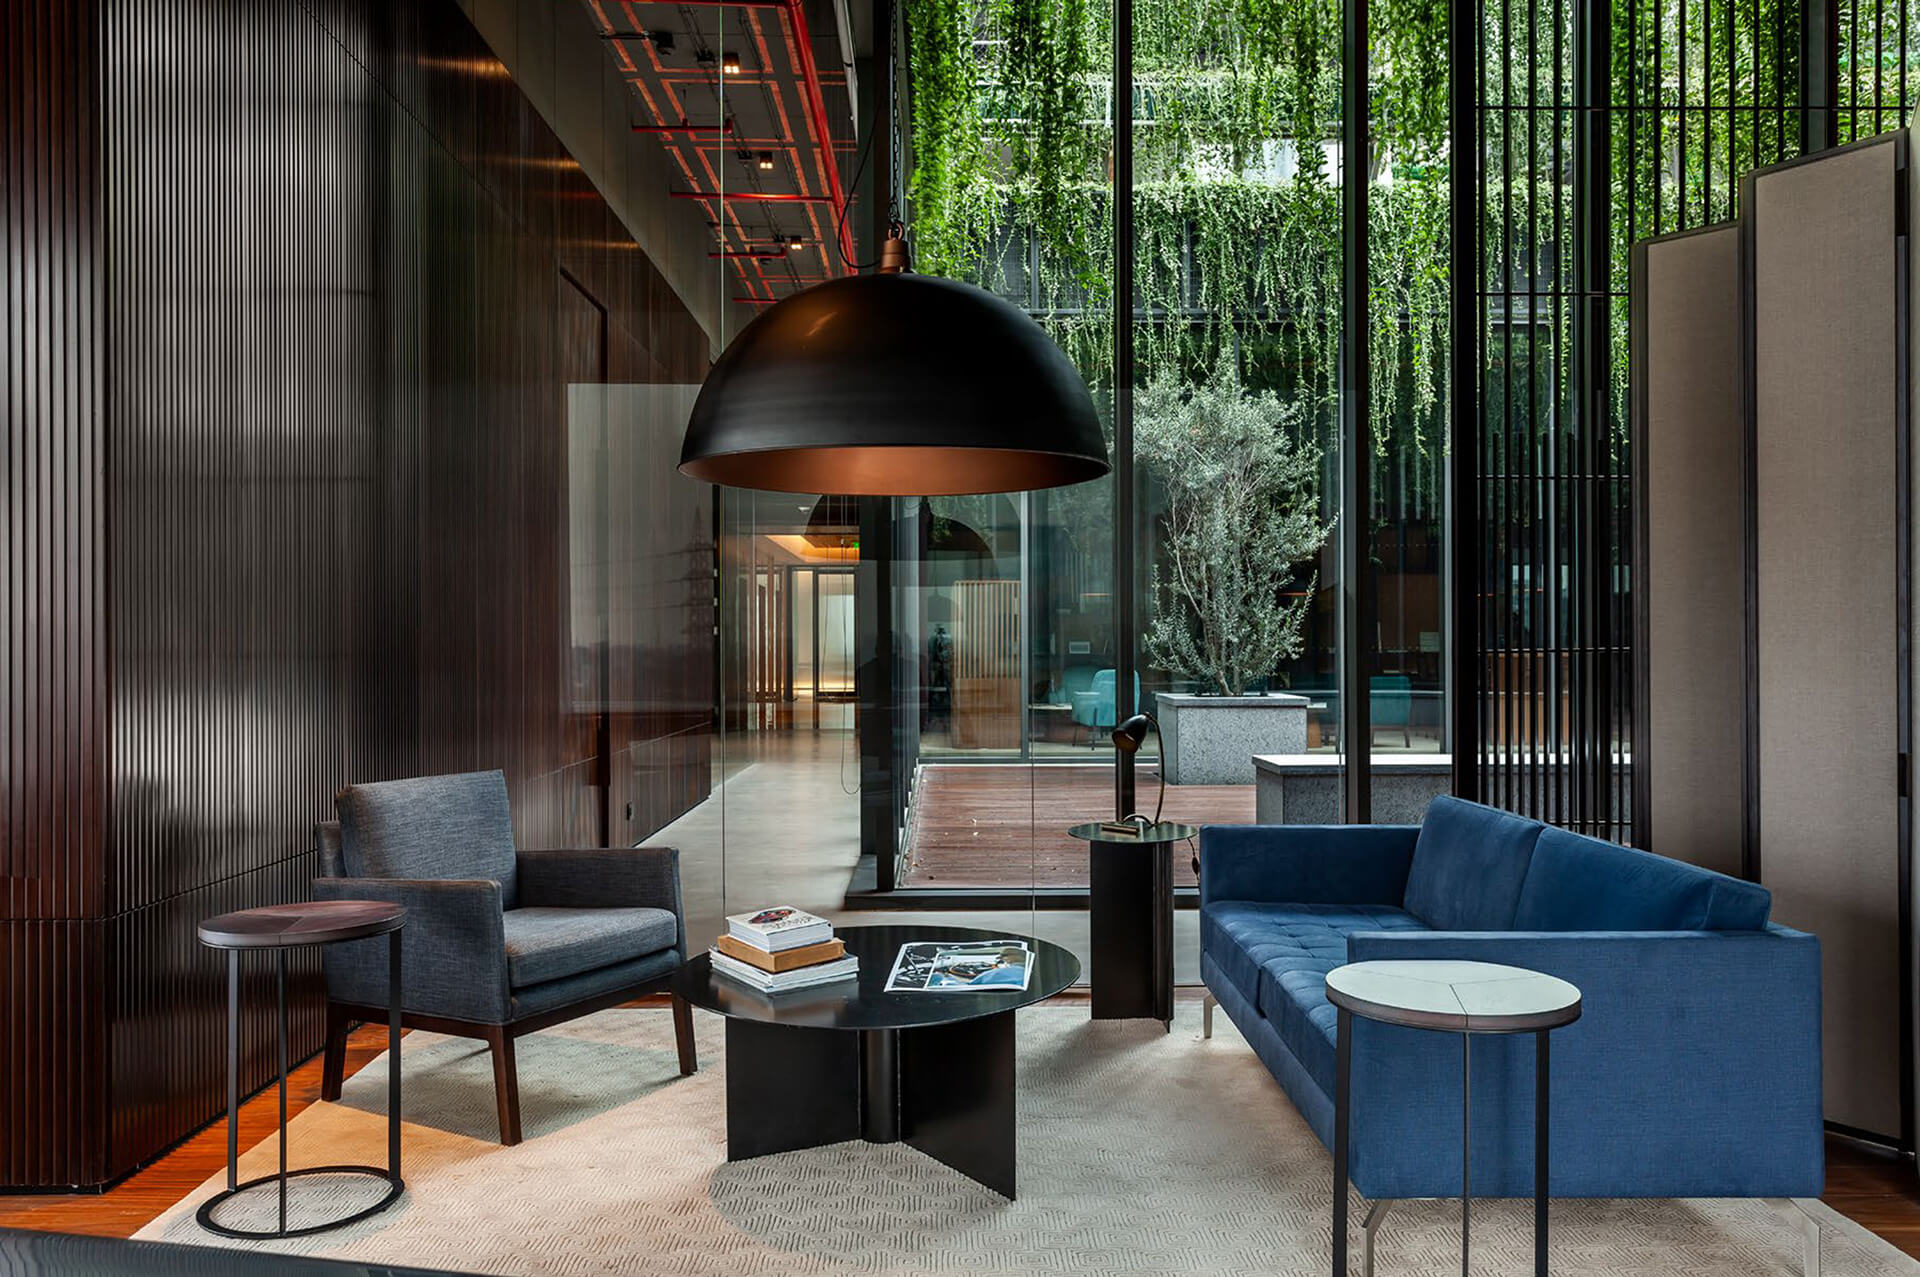 Architecture Discipline adopted an avant-garde approach to the modern office| East India Hotel's headquarters by Architecture Discipline | STIRworld